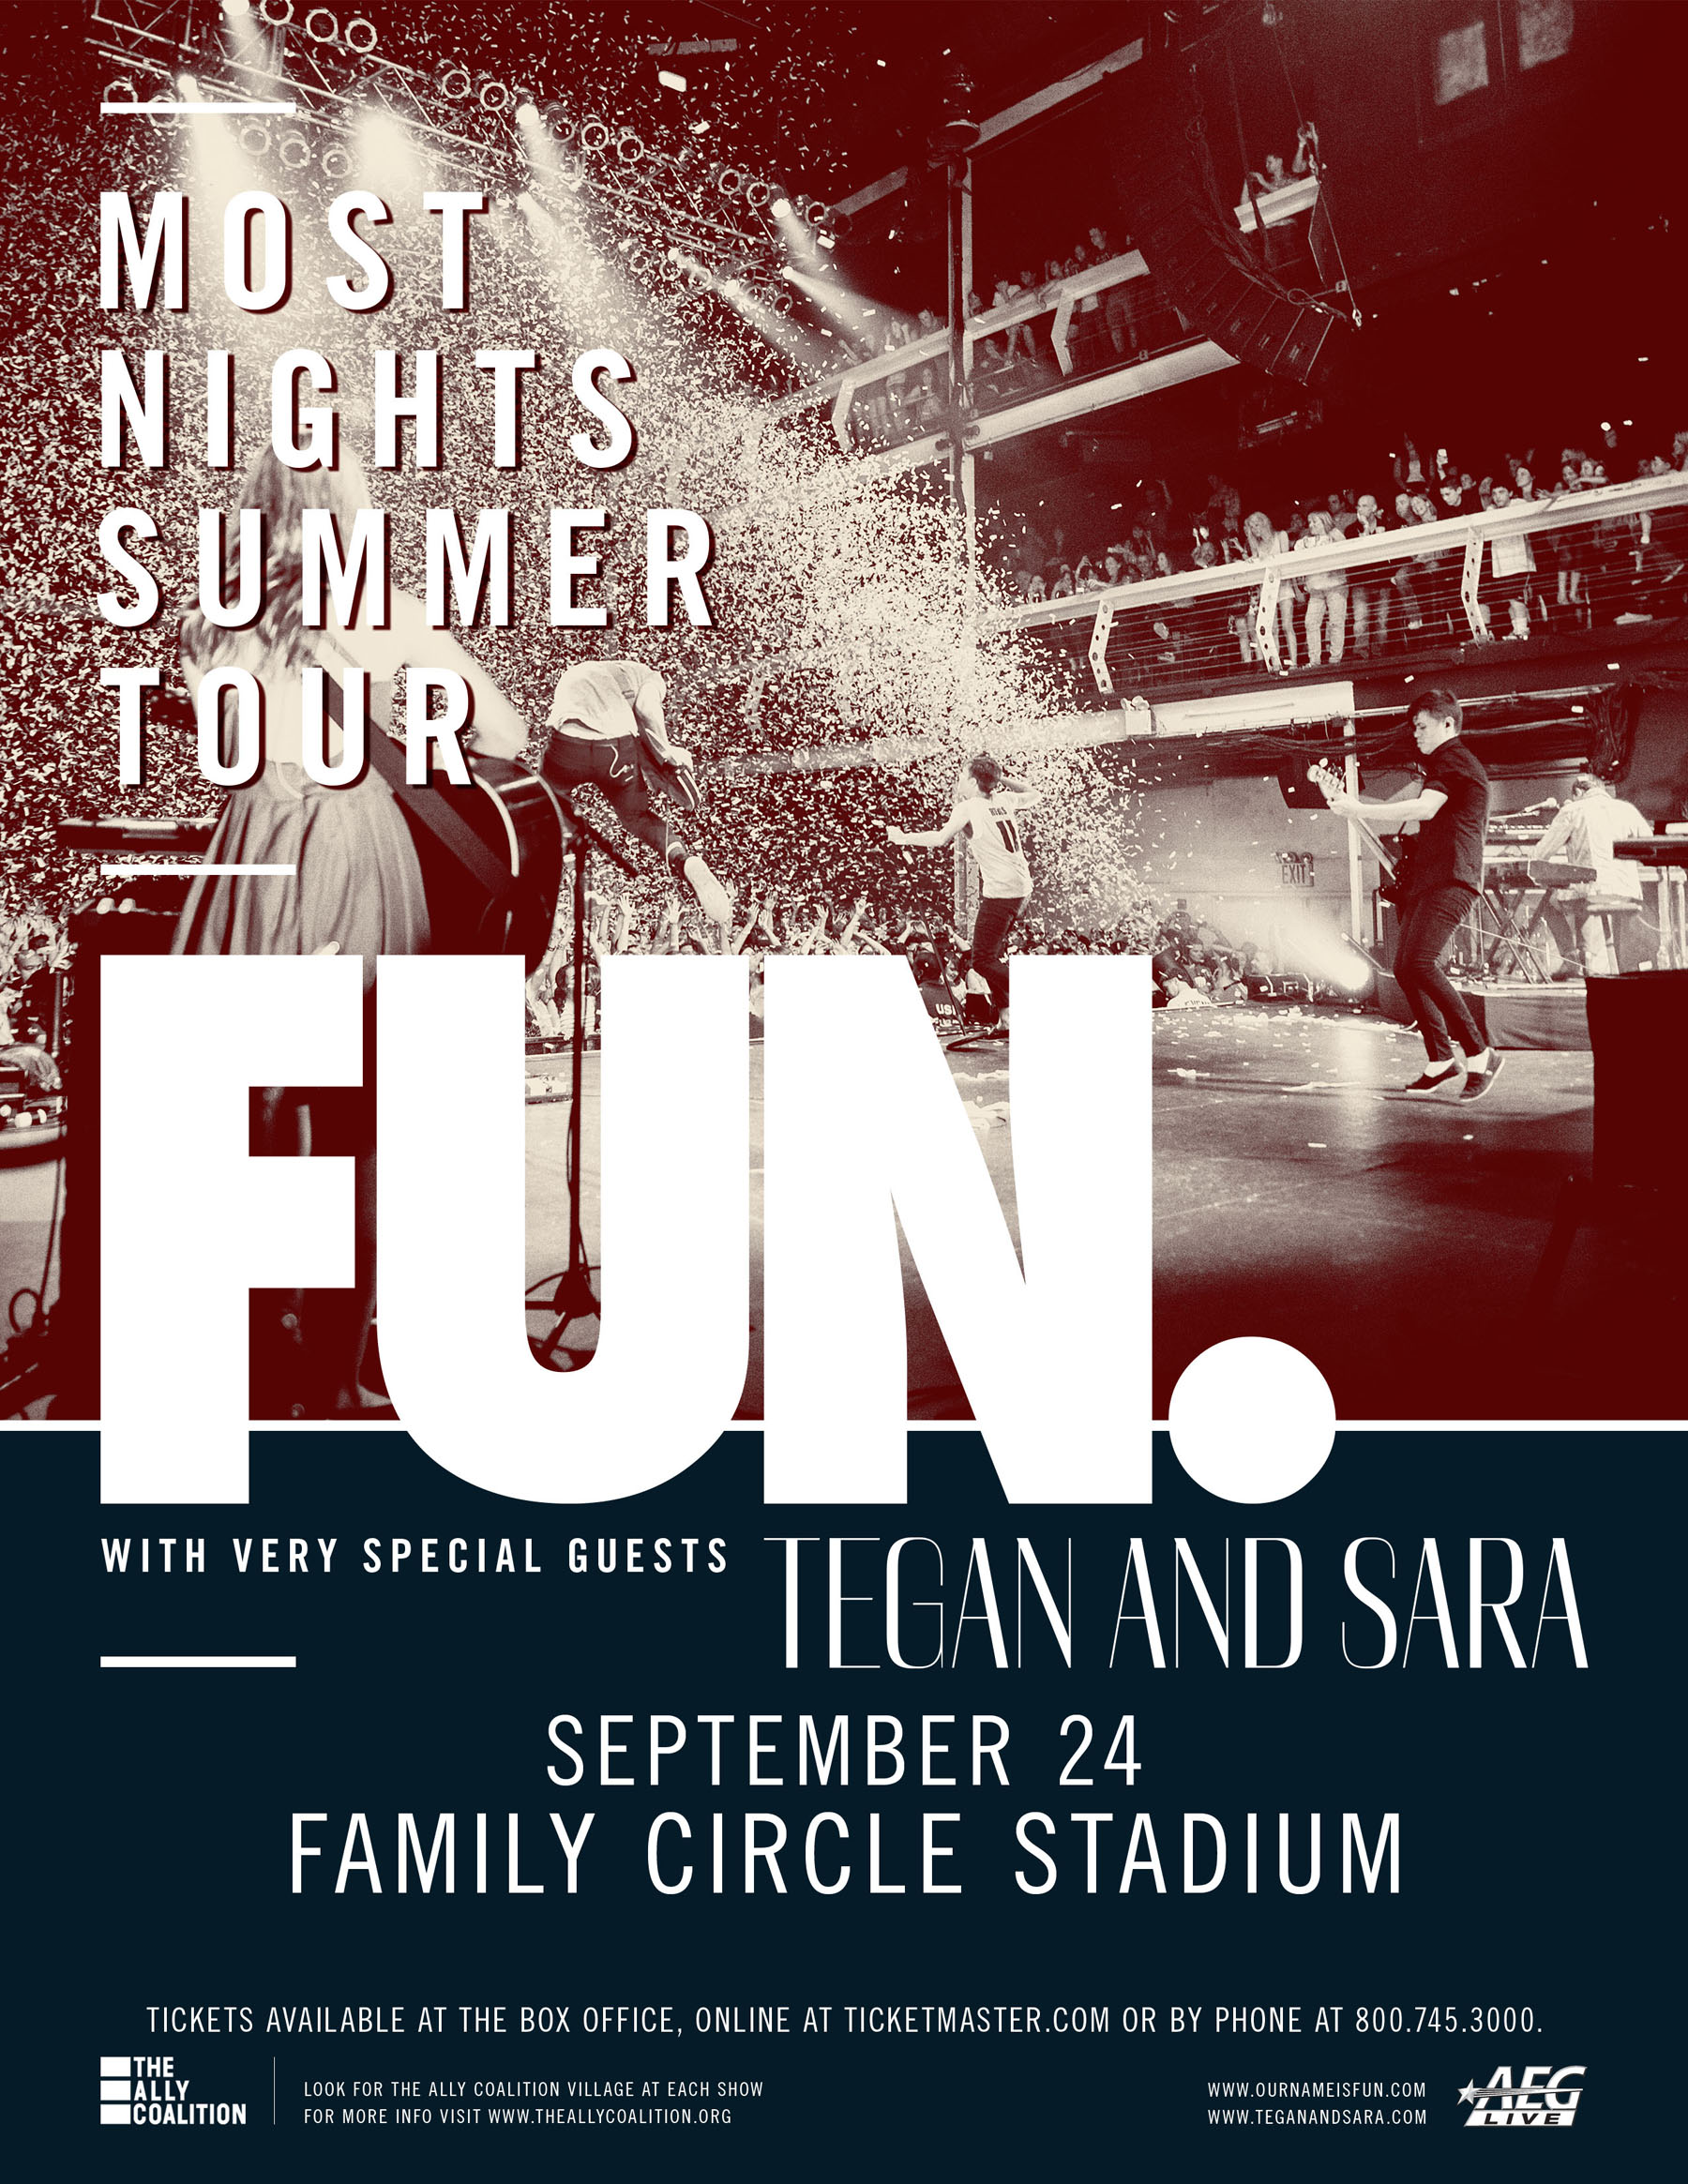 [ETW] fun. and Tegan and Sara at Family Circle Stadium